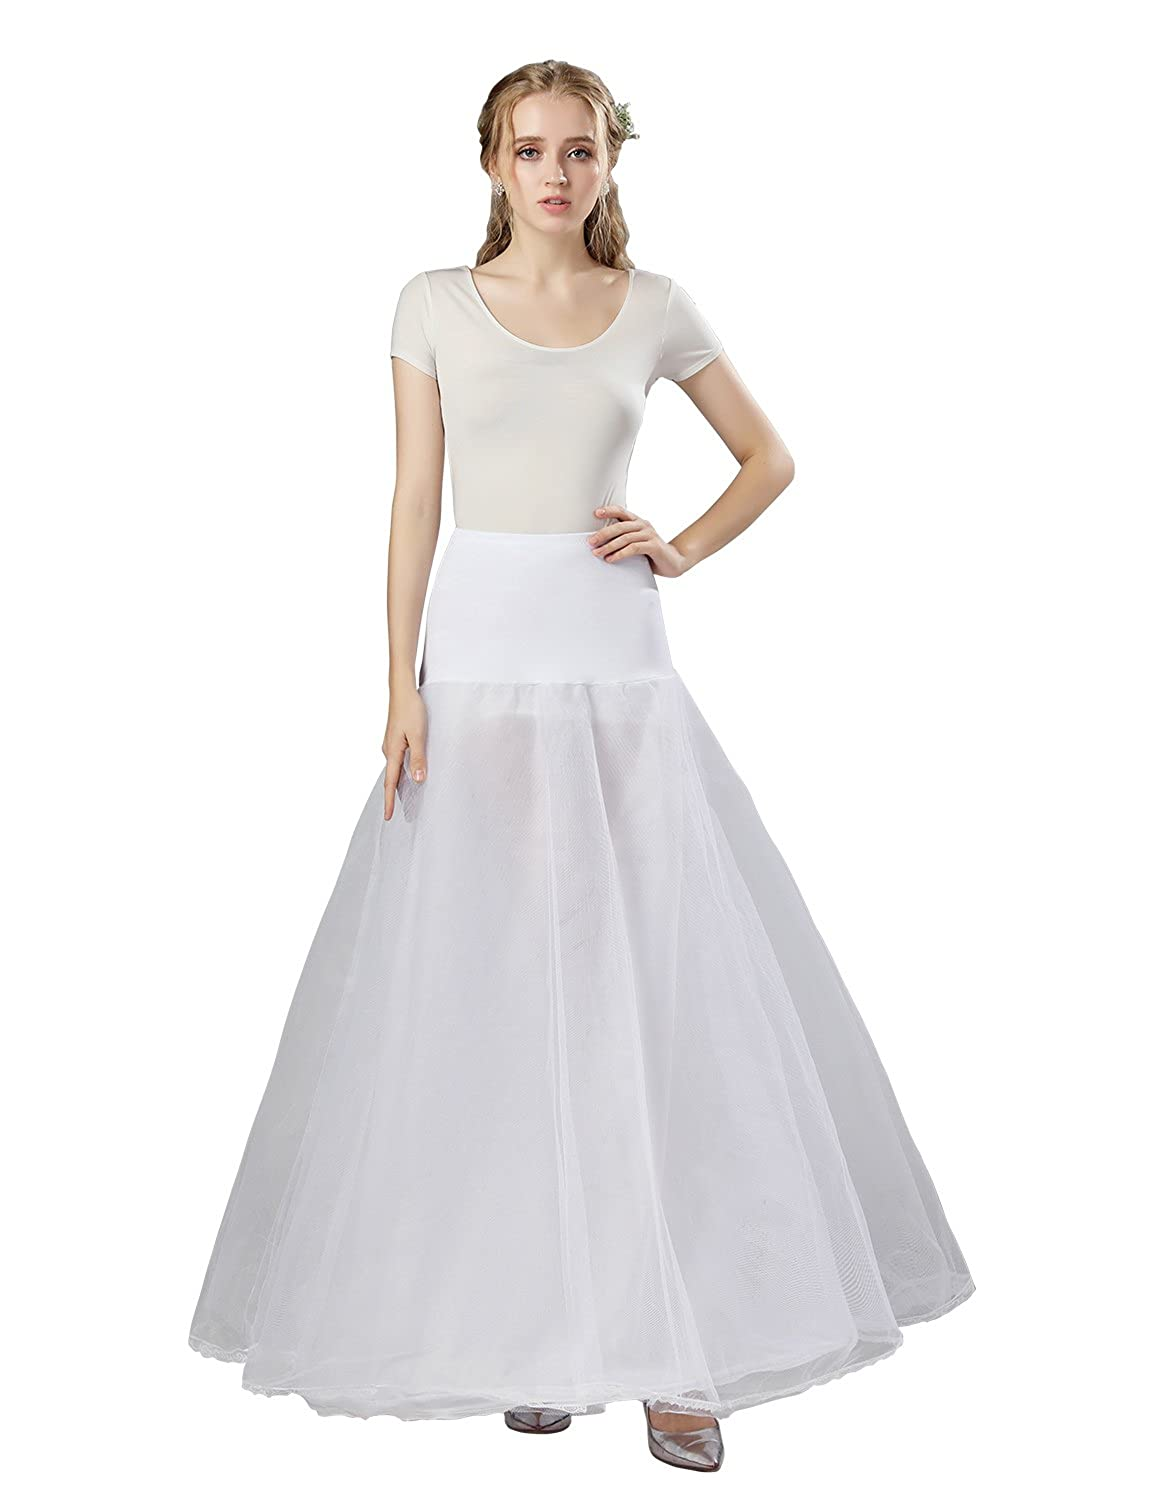 Clearbridal Womens White Wedding Petticoats Underskirt for Party Ball Gown: Amazon.co.uk: Clothing